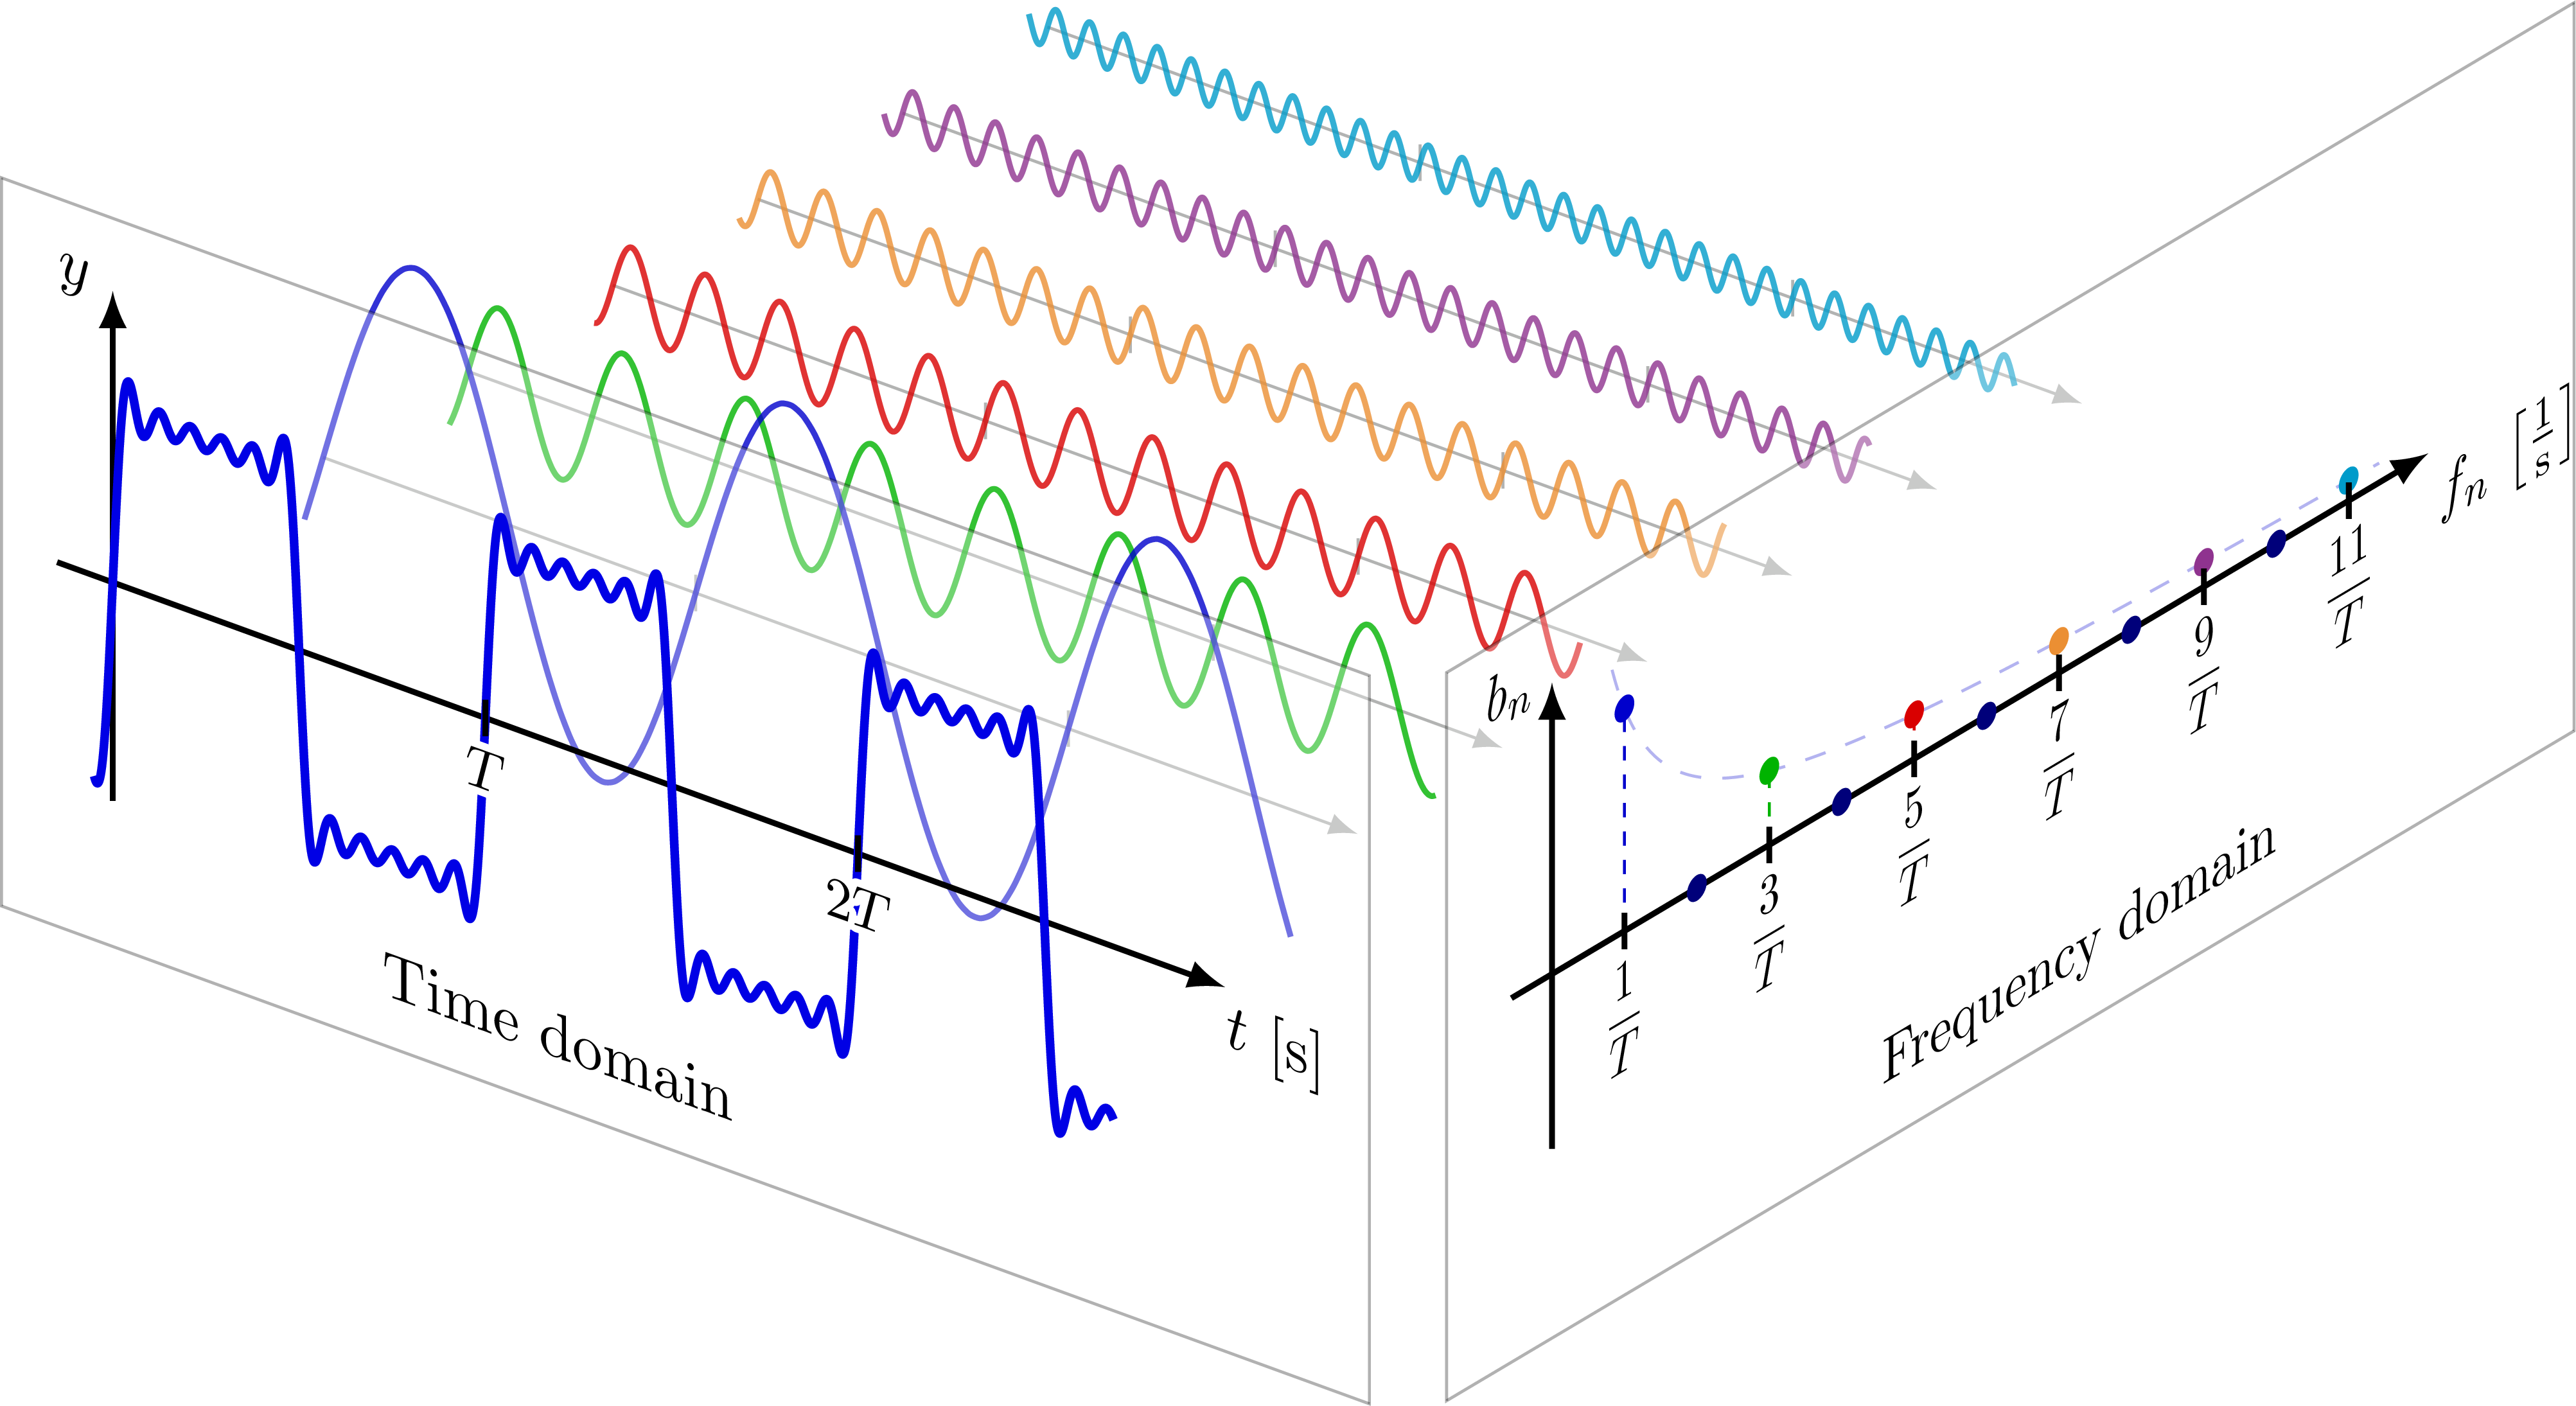 fourier_series-011.png